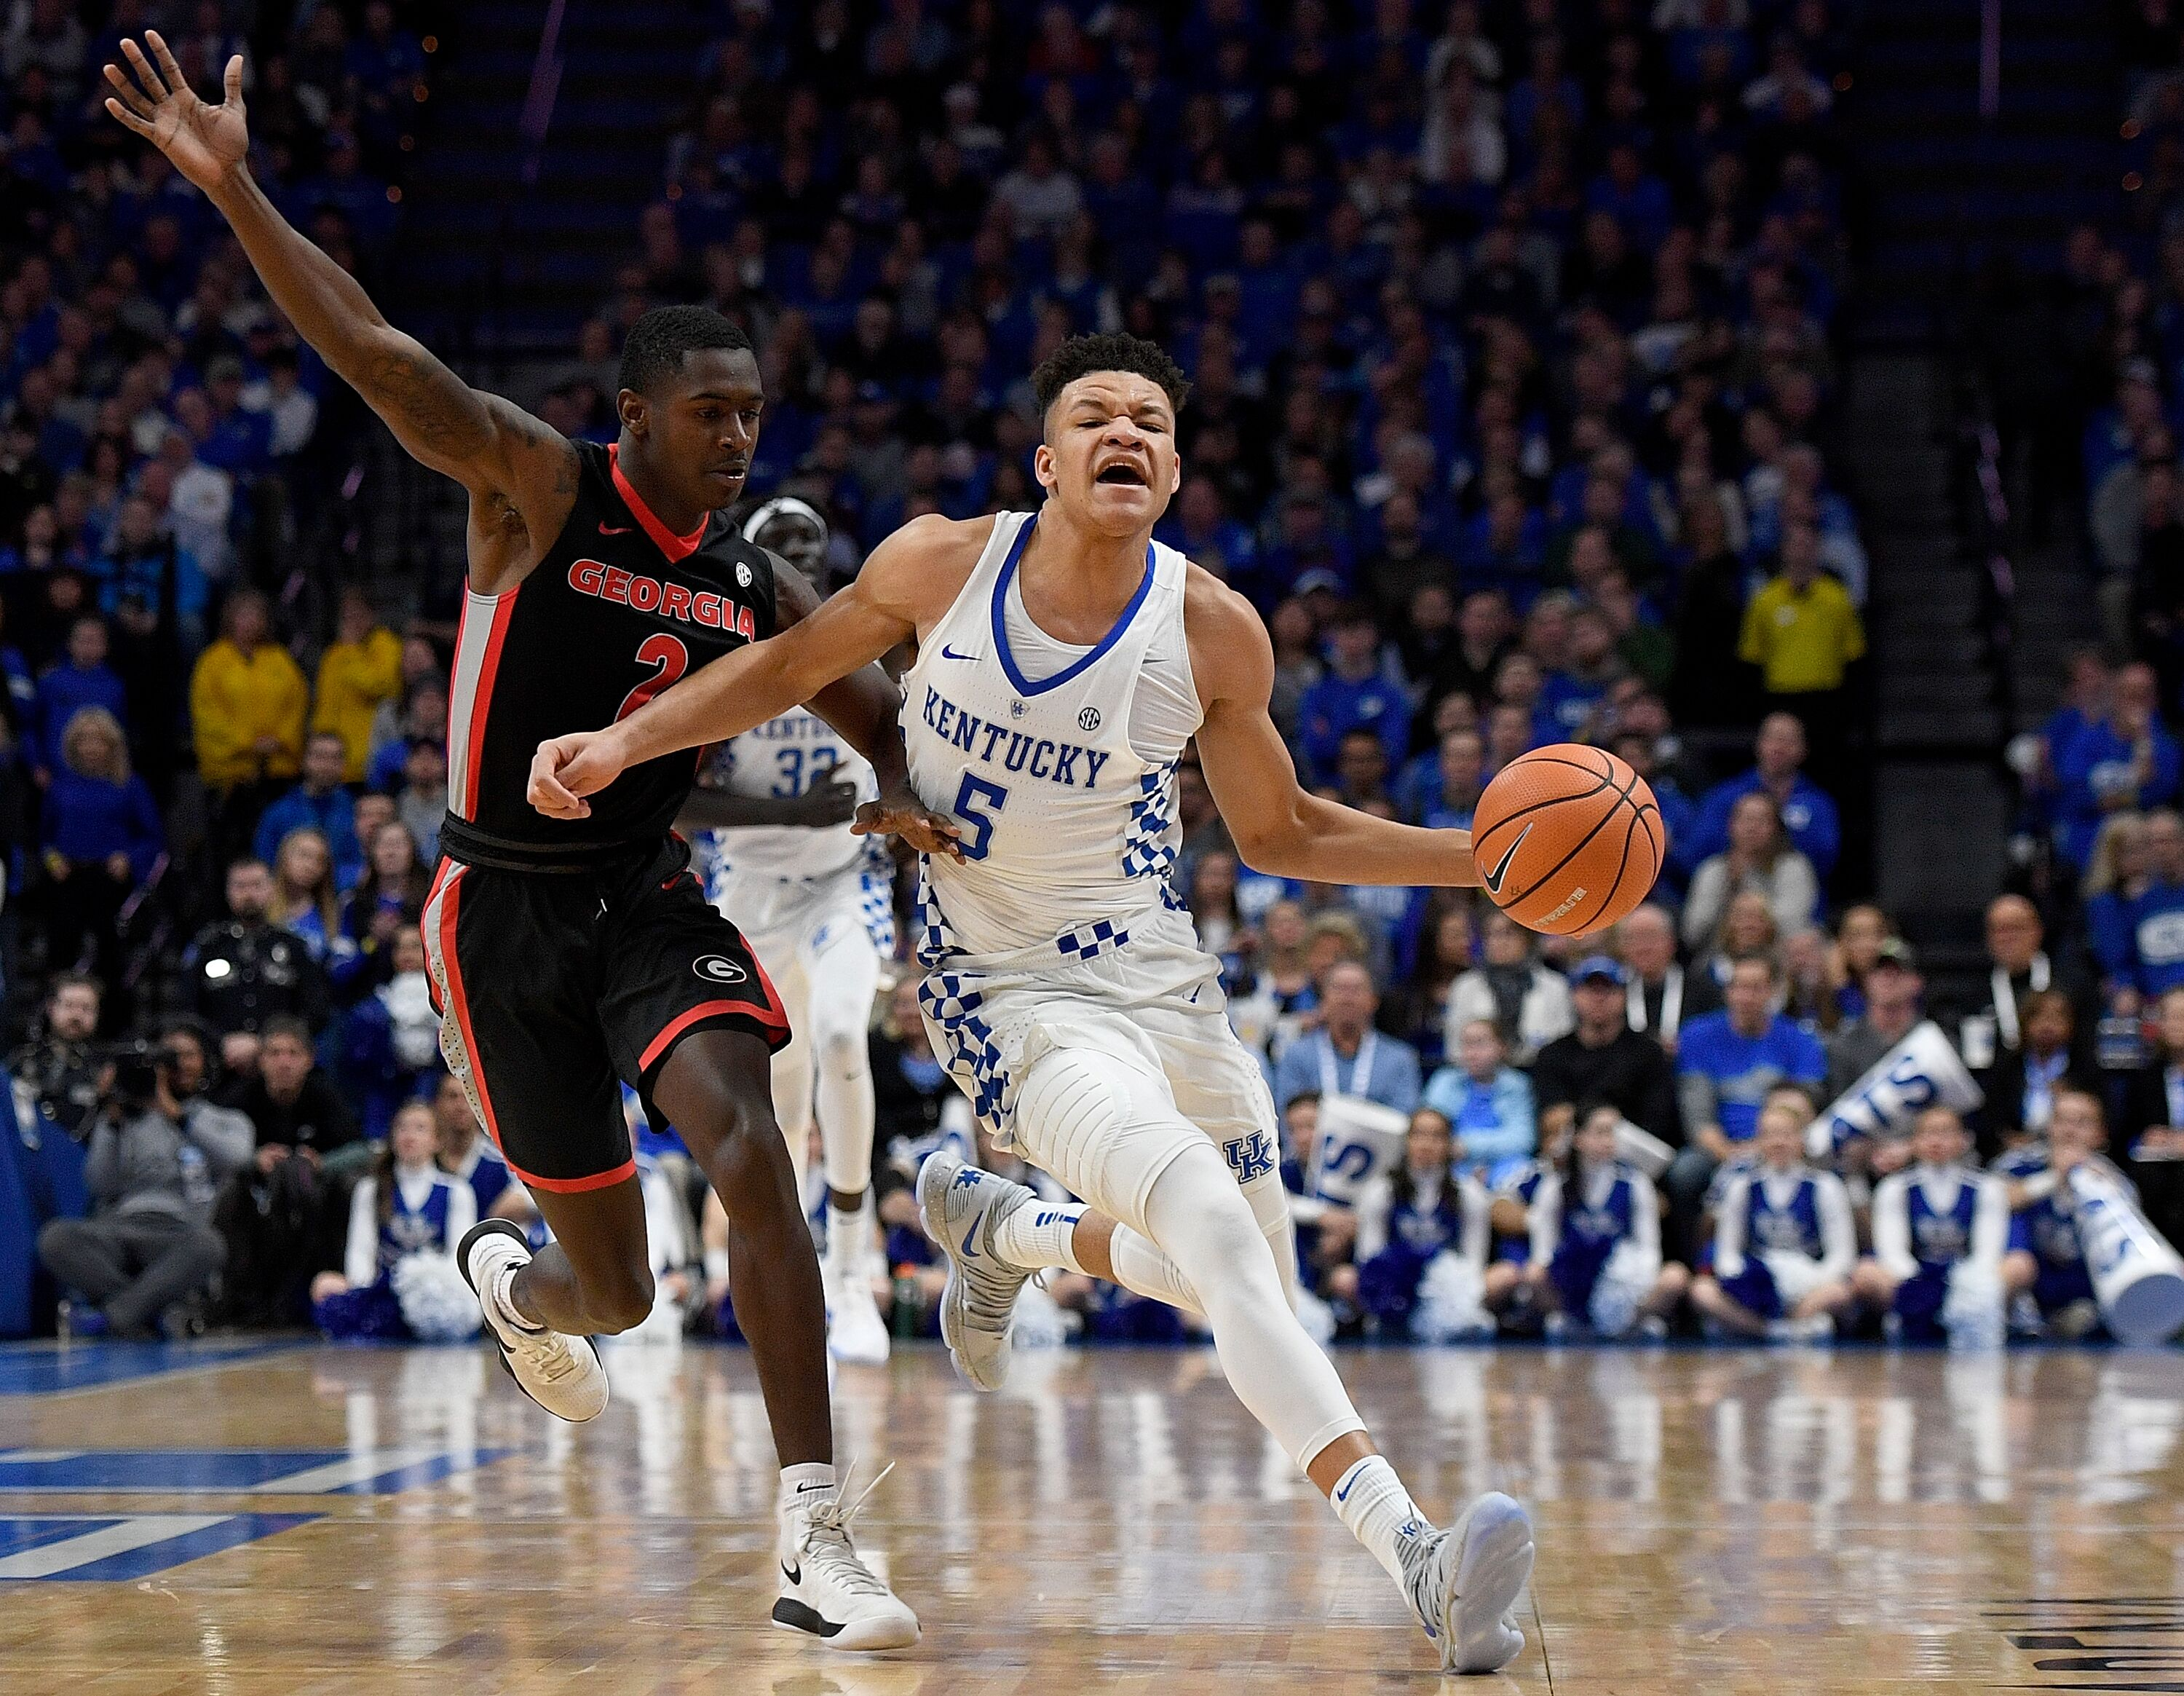 Uk Basketball: Kentucky Basketball: What's Wrong With Kevin Knox?